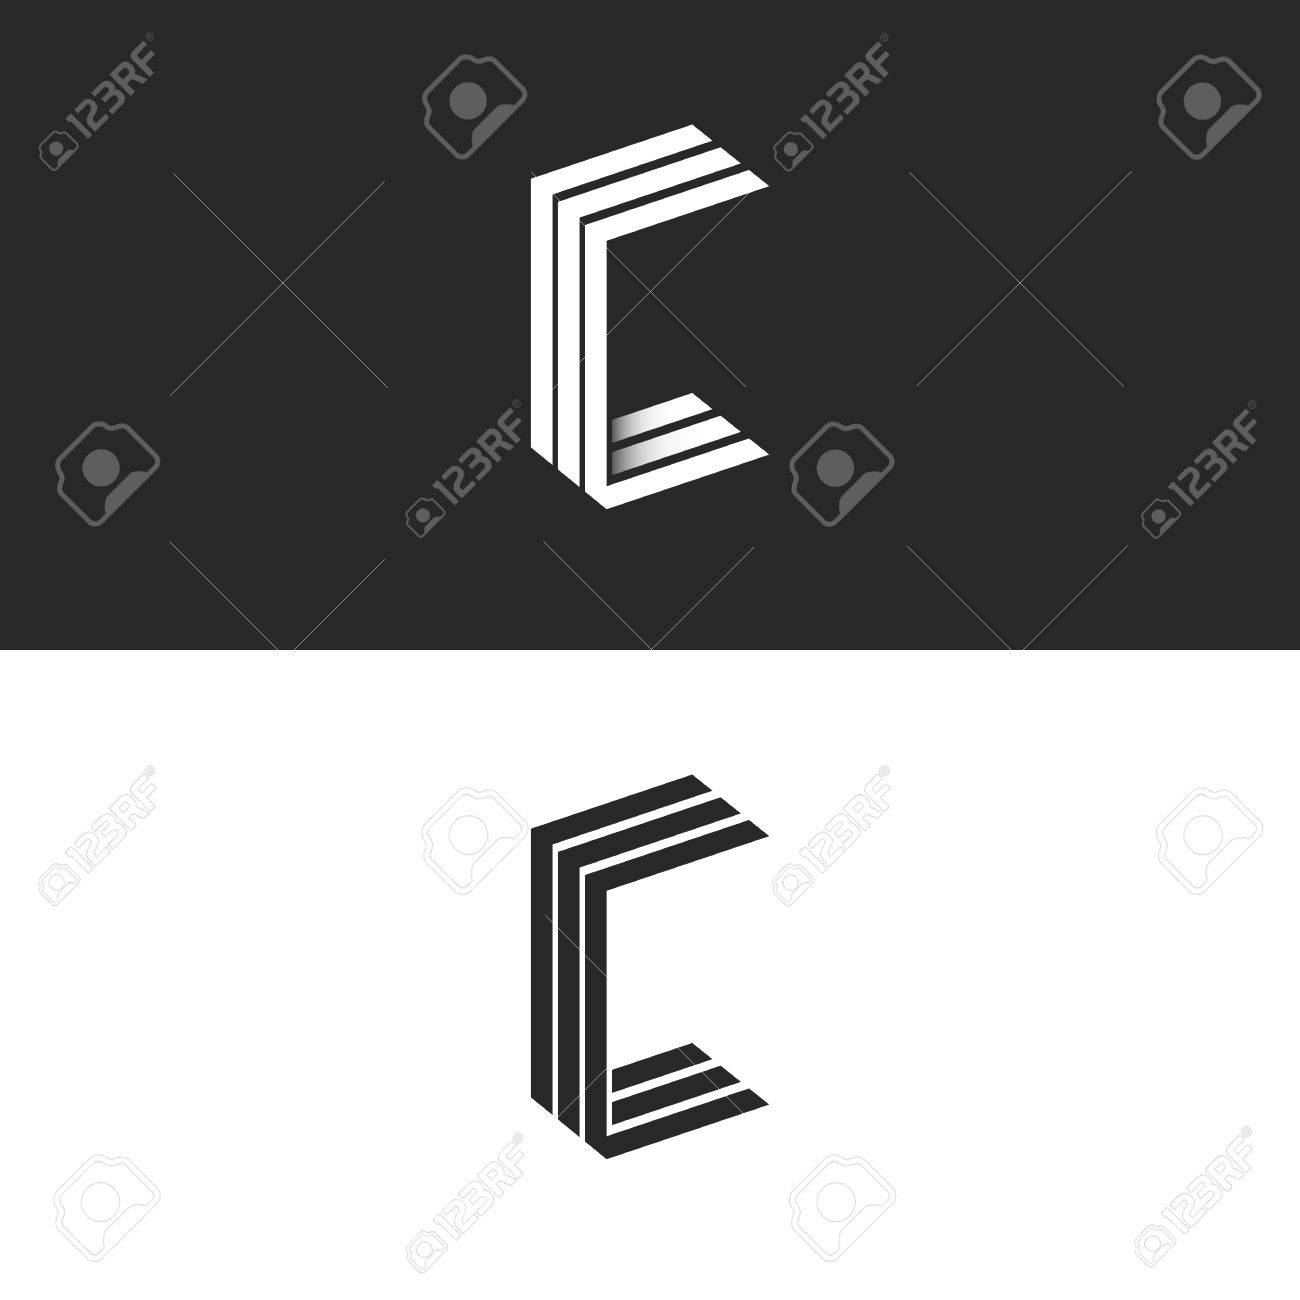 Idea 3d Logo C Letter Isometric Monogram Group Initials Ccc Royalty Free Cliparts Vectors And Stock Illustration Image 65958634